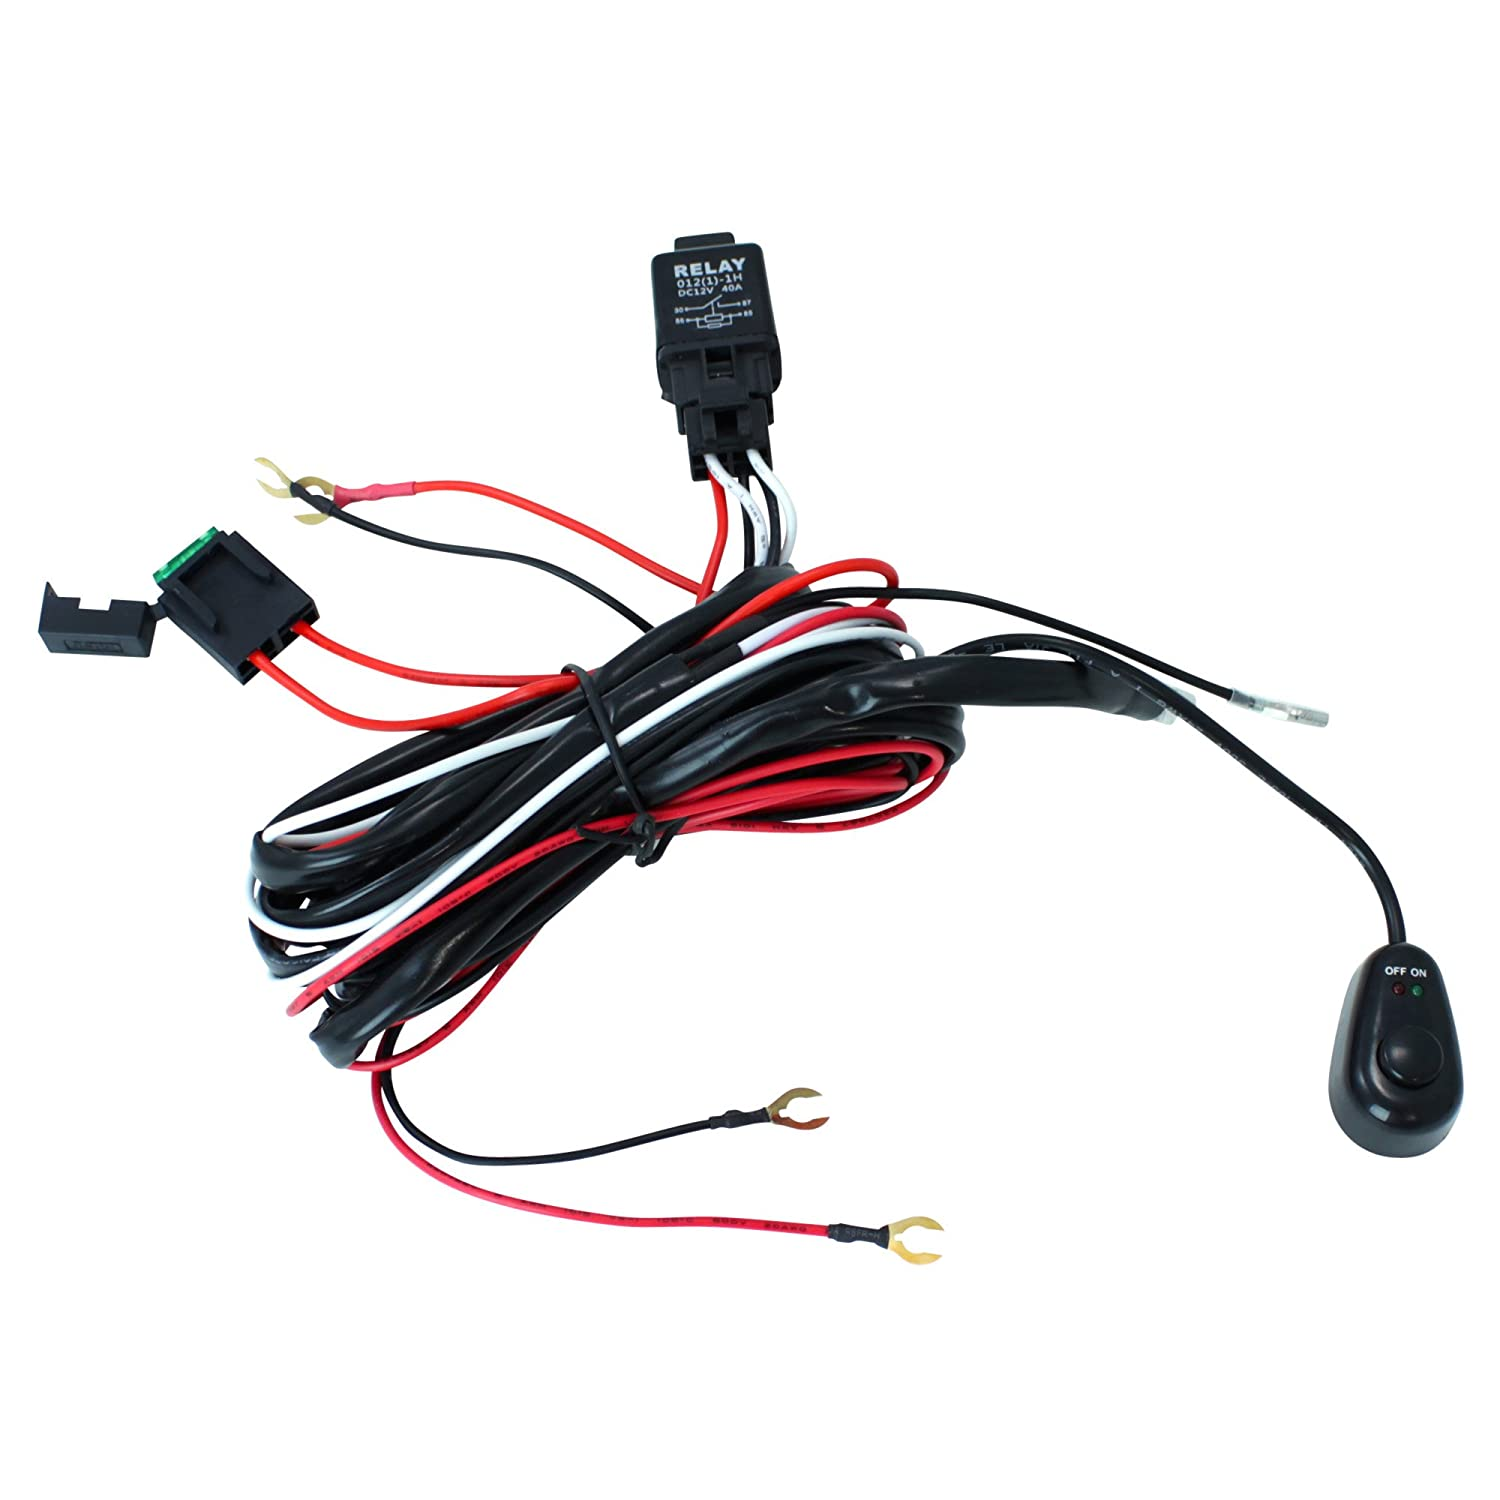 71ONjFALDCL._SL1500_ amazon com dt moto™ off road atv jeep led light bar wiring off road wiring harness at mifinder.co